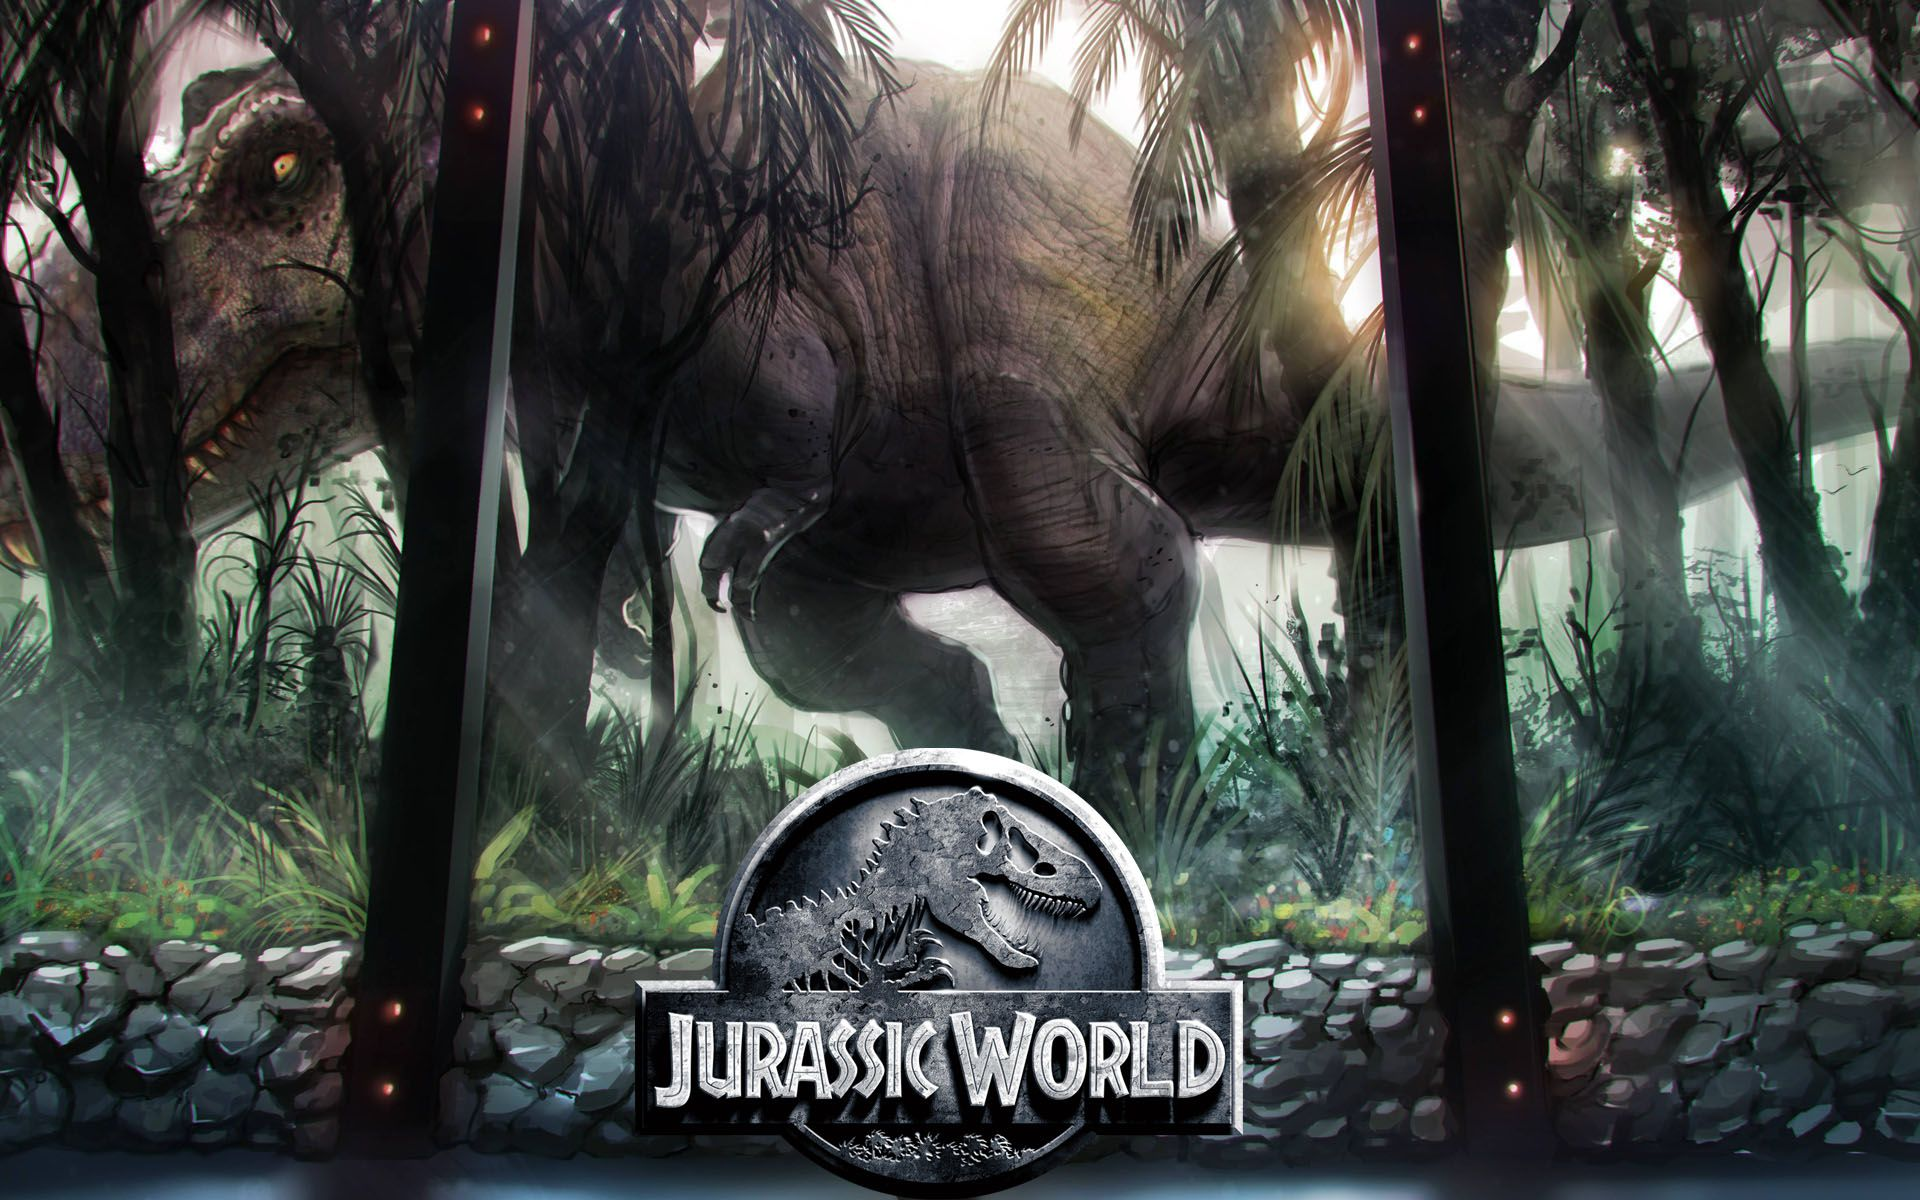 Jurassic World Poster Artwork Wallpaper | Movie Wallpaper ...